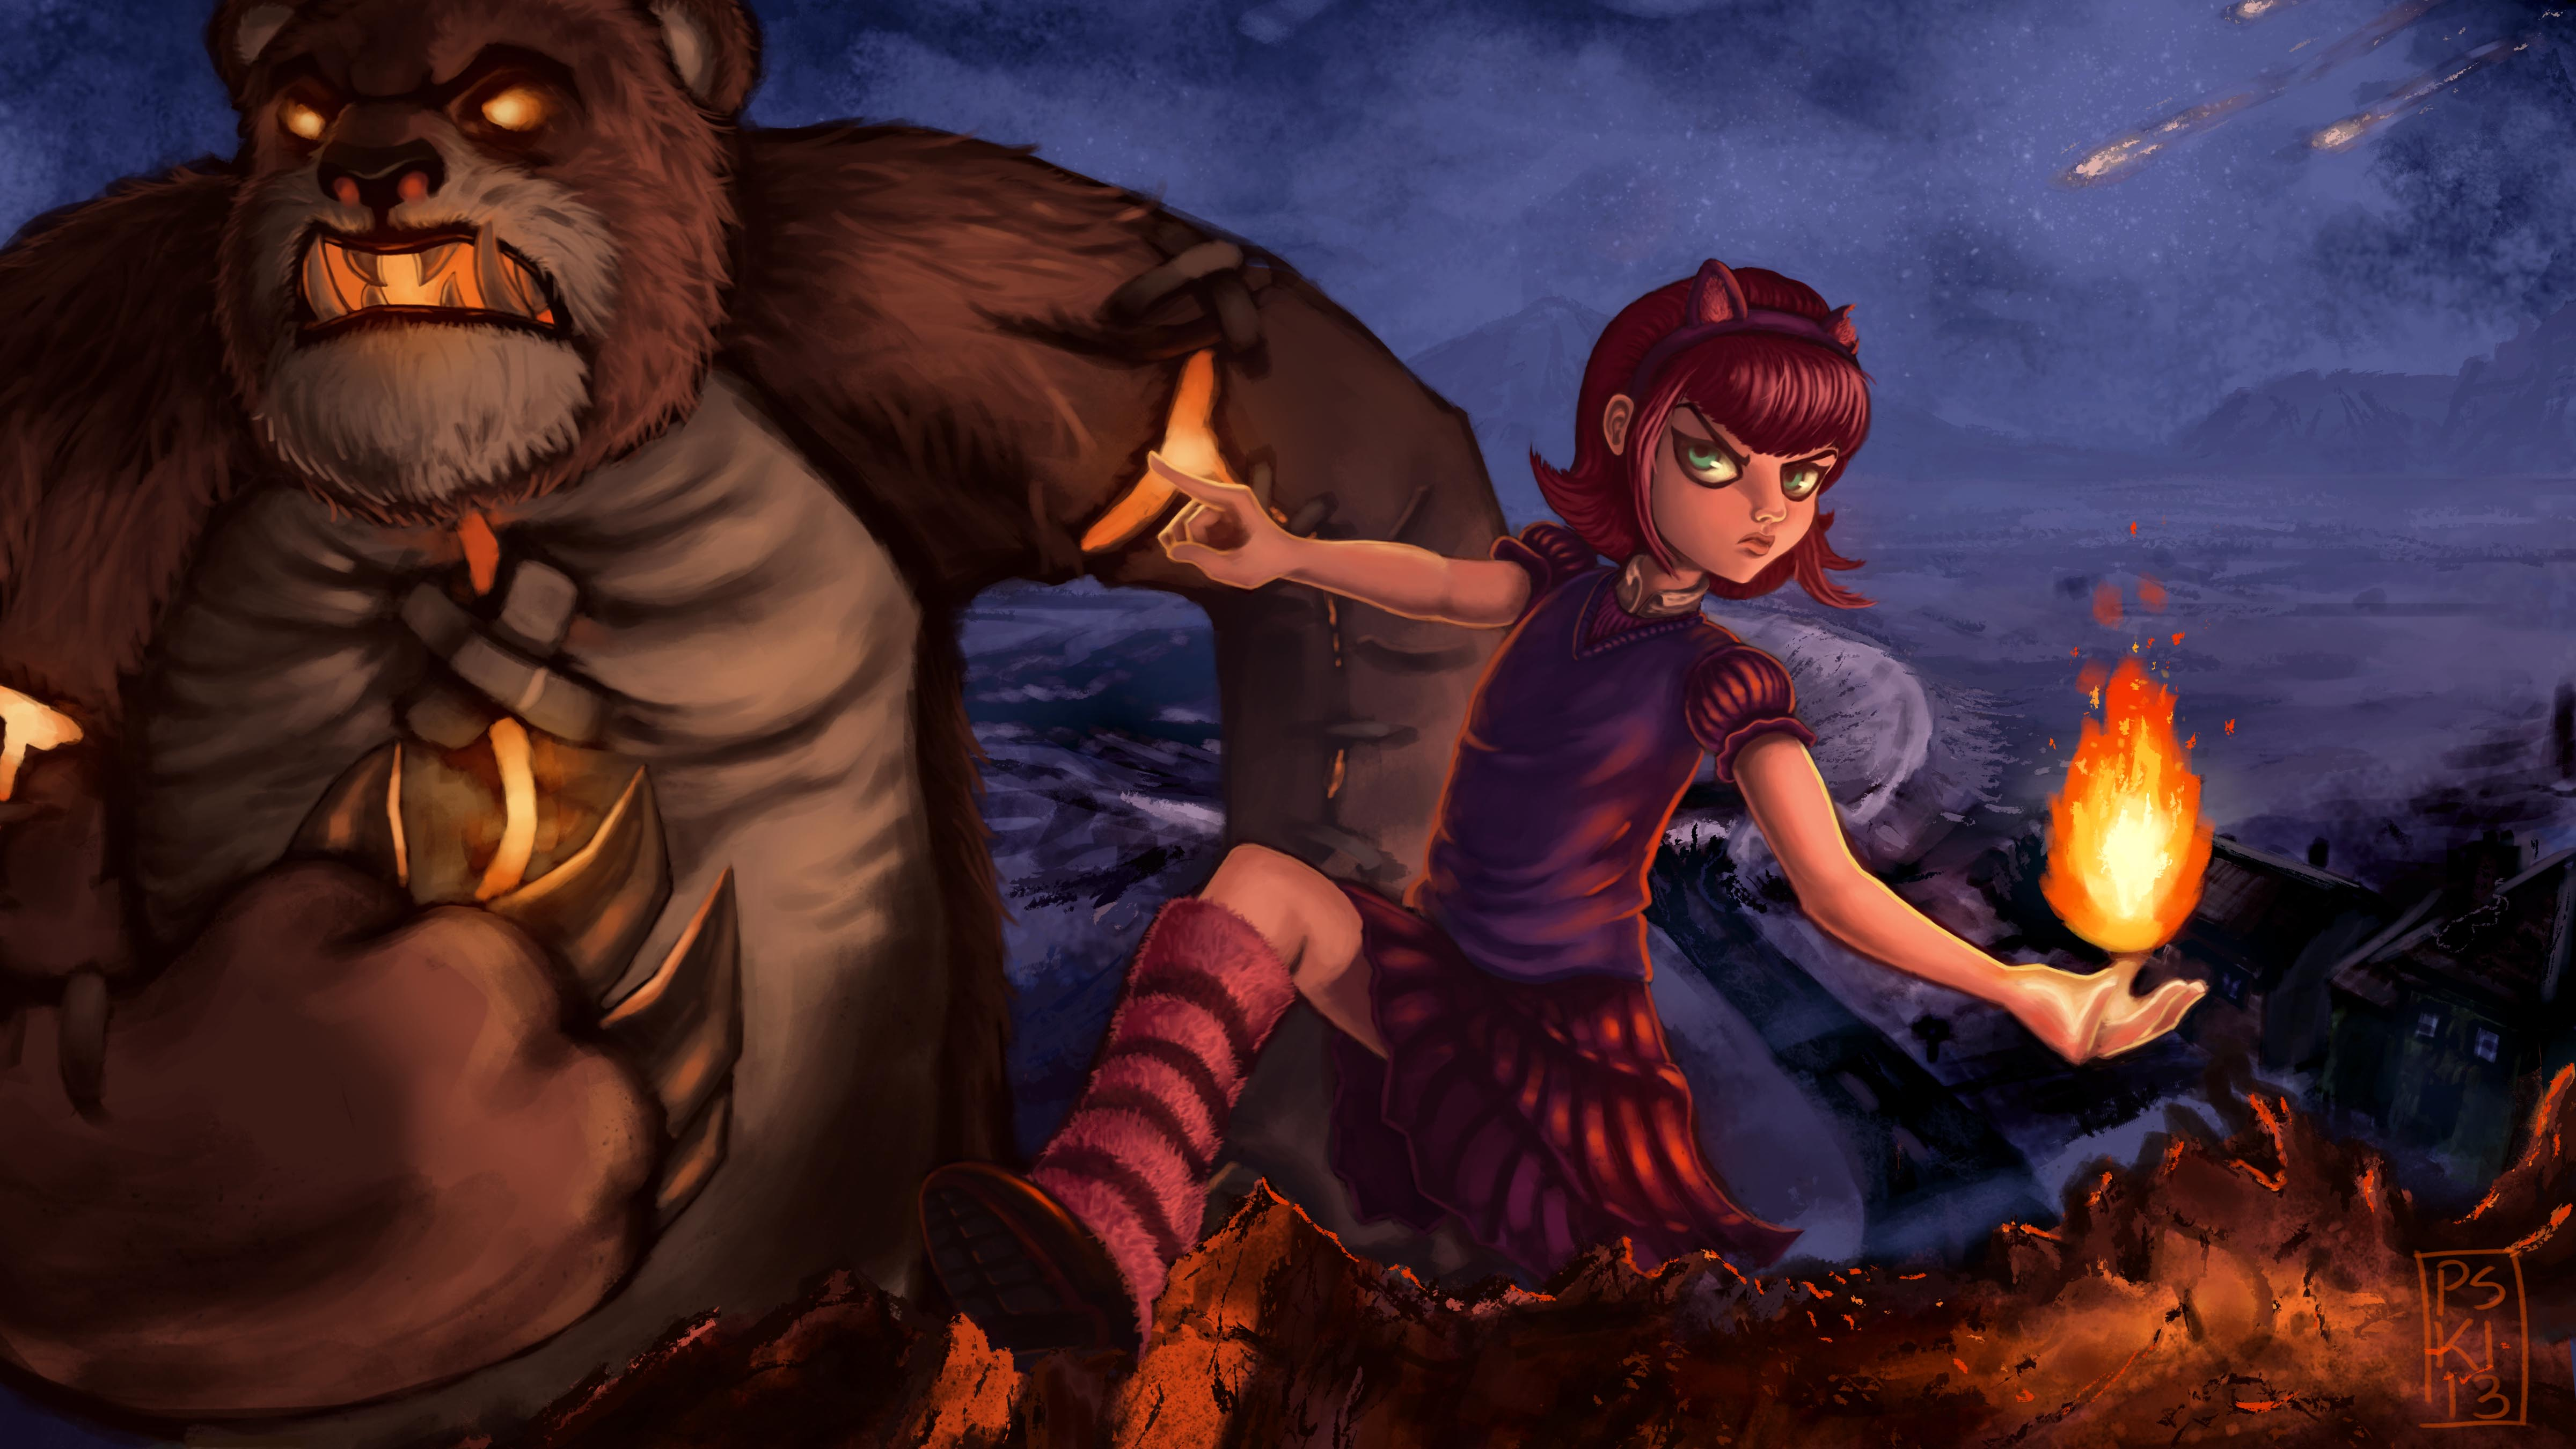 Annie and Tibbers: LoL